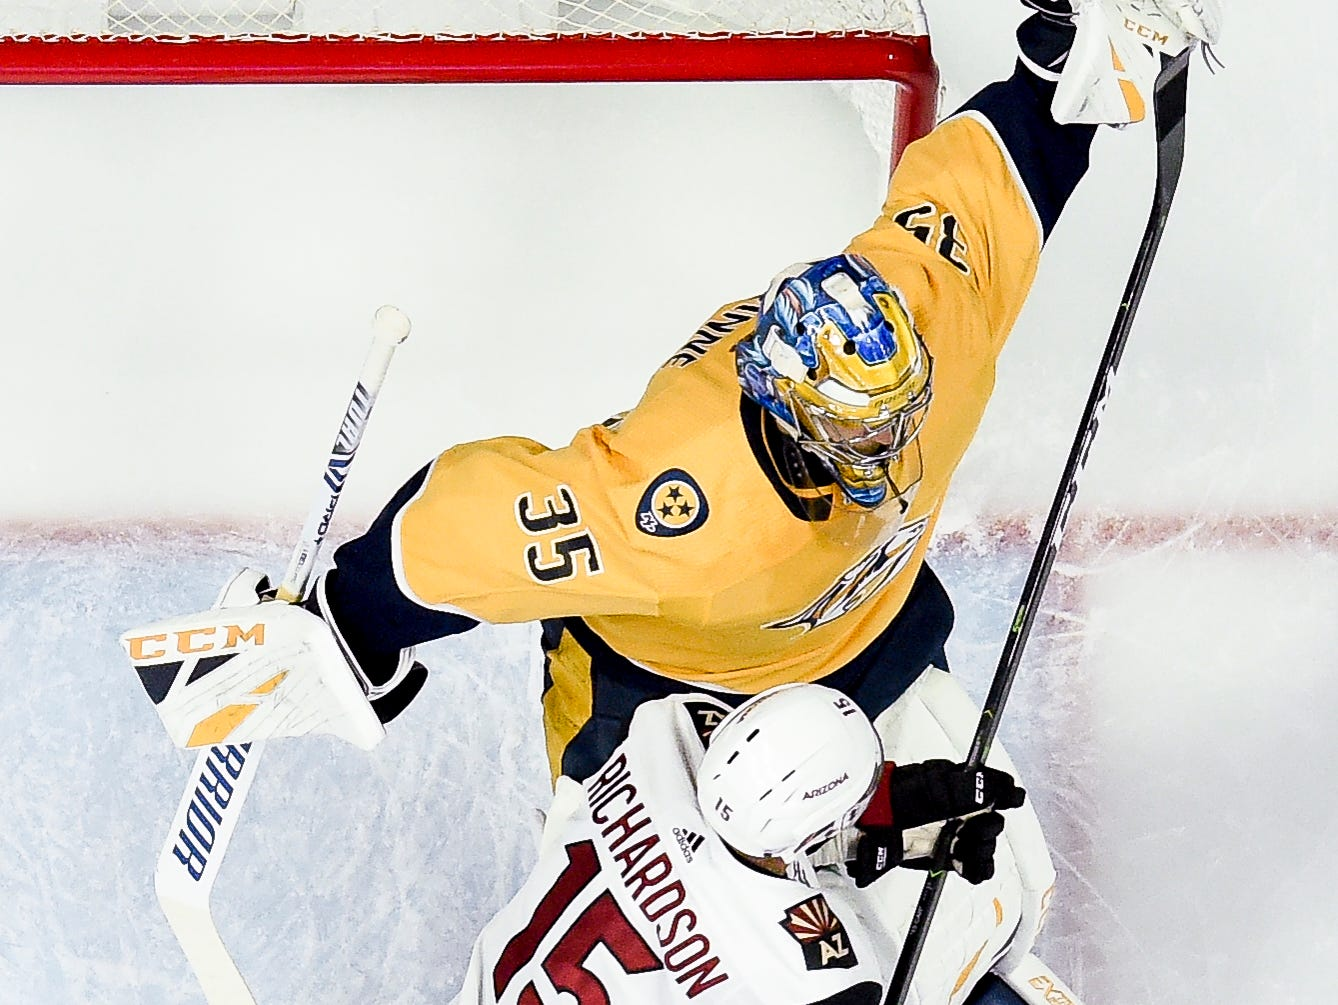 Nashville Predators goaltender Pekka Rinne (35) makes a save next to Arizona Coyotes center Brad Richardson (15) during the first period at Bridgestone Arena in Nashville, Tenn., Thursday, Nov. 29, 2018.